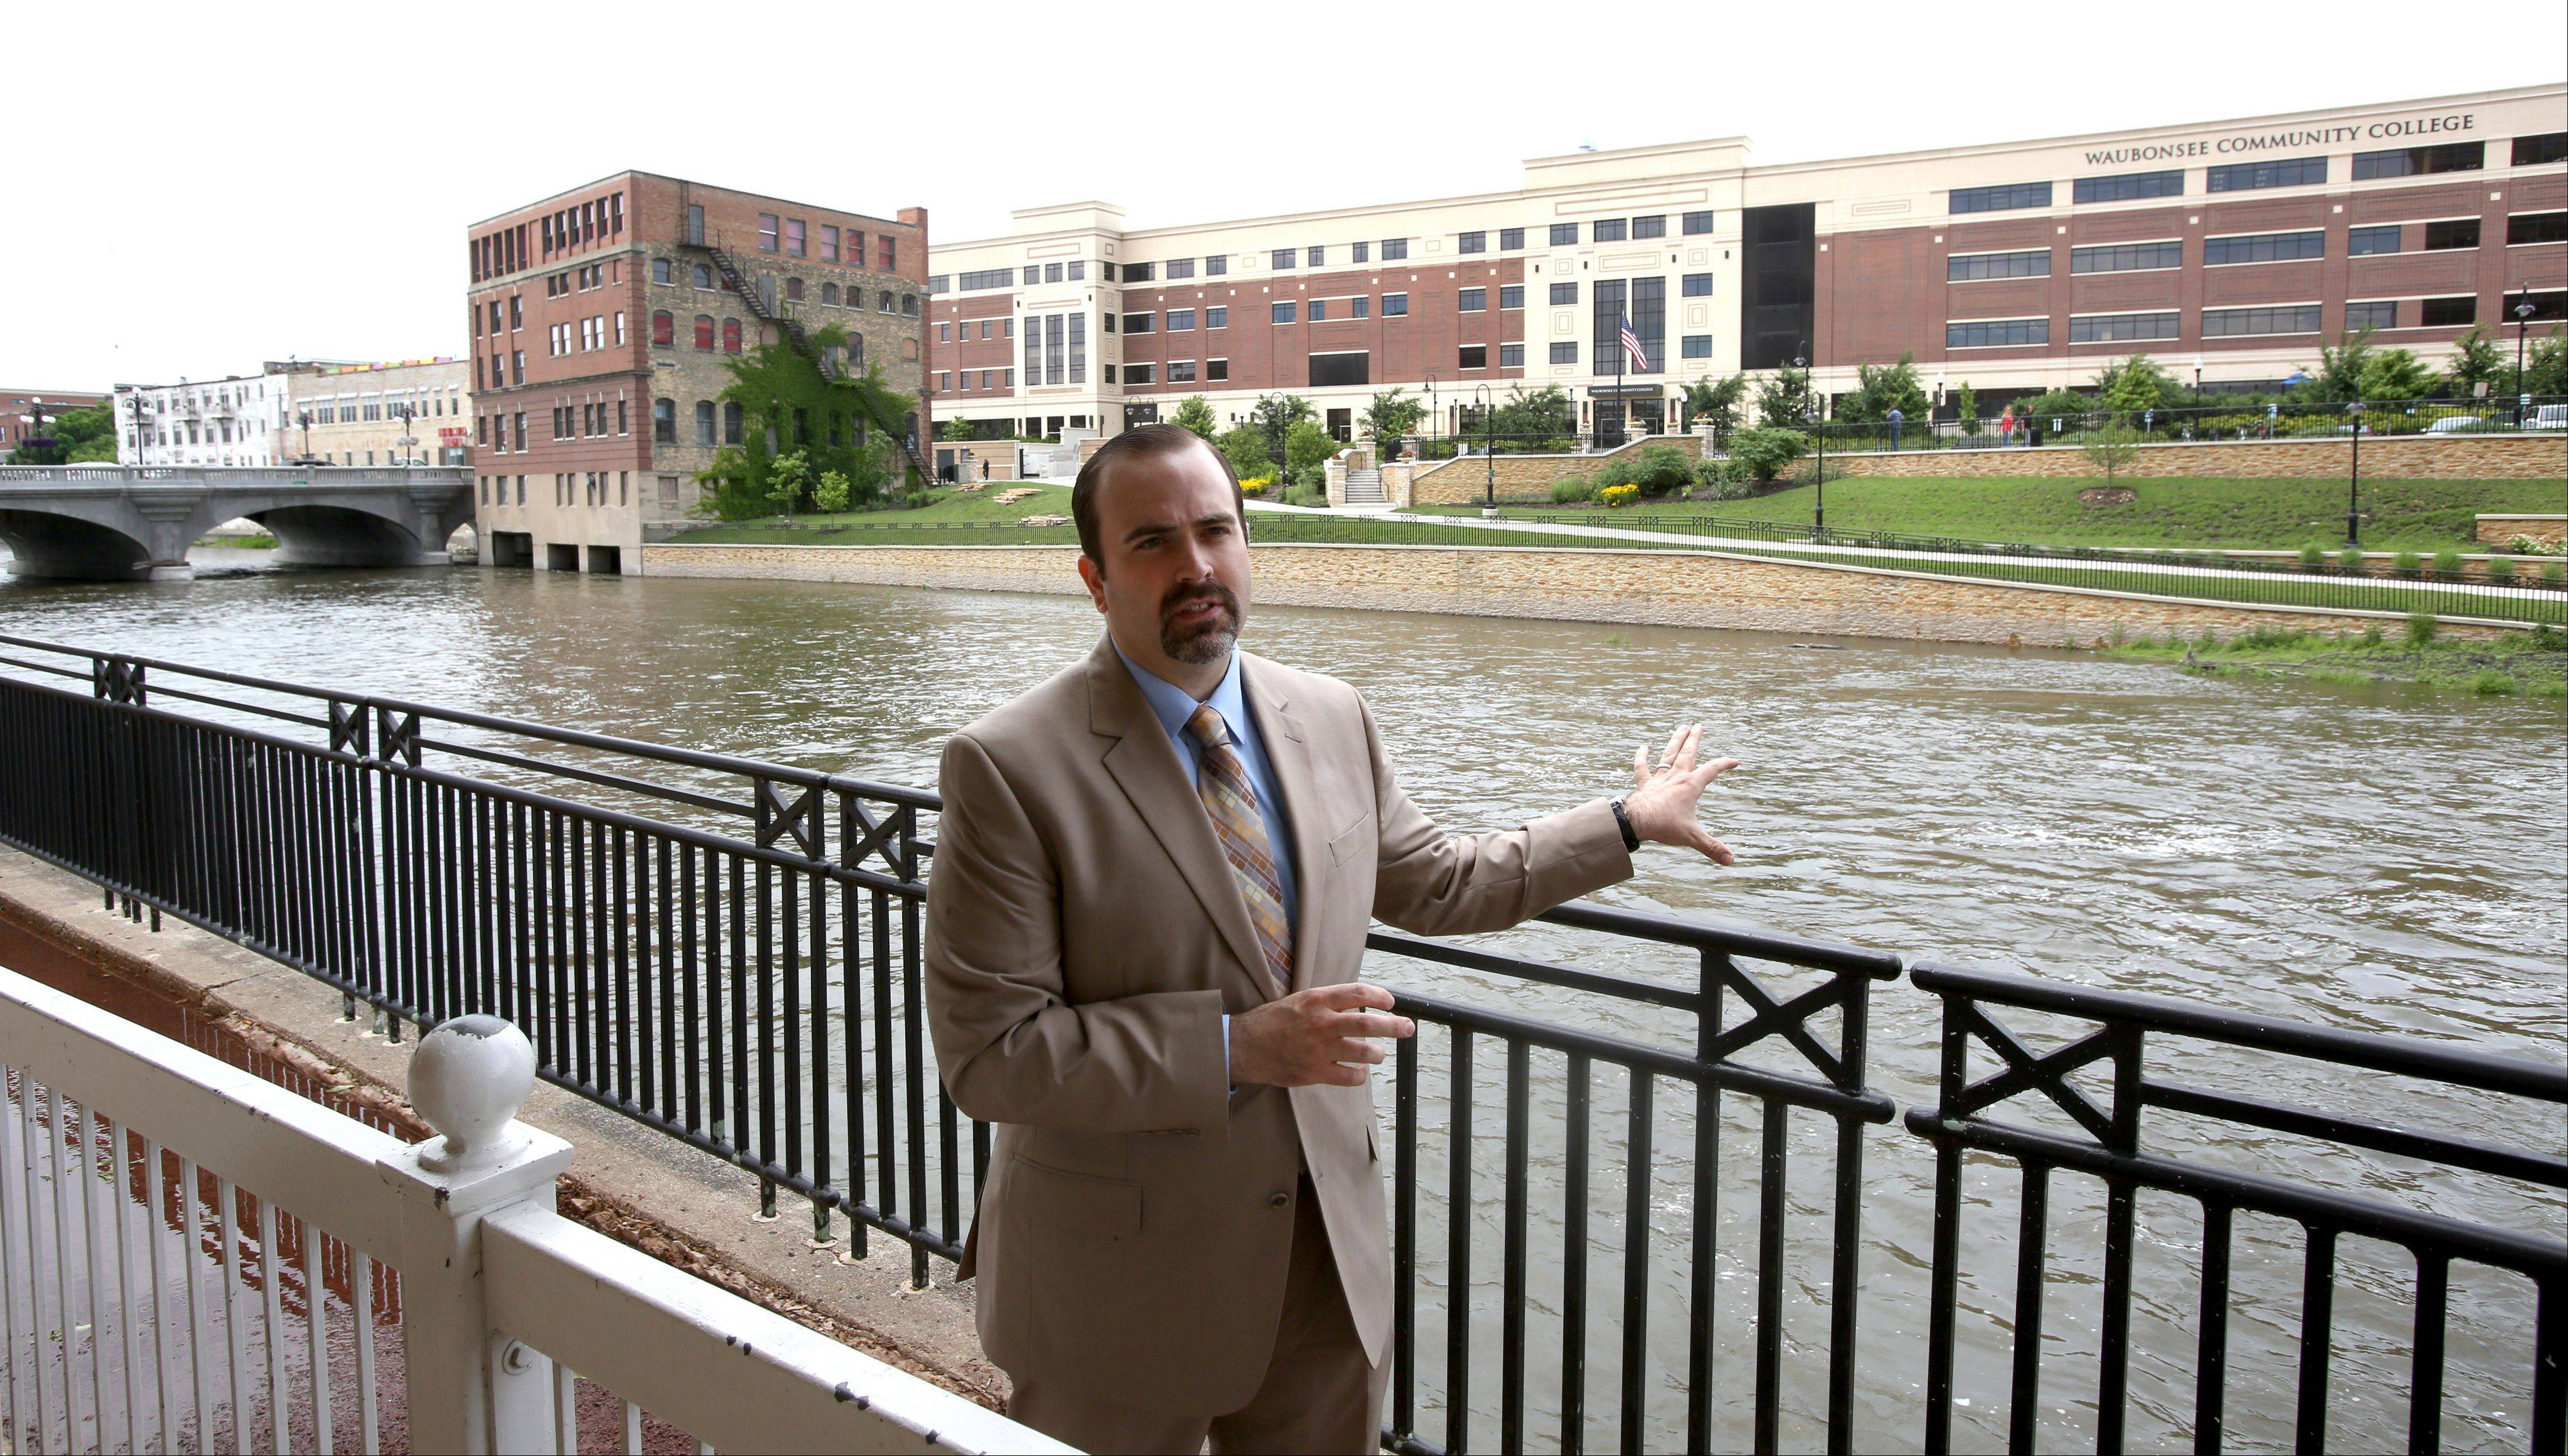 Jeff Noblitt, president of Aurora Downtown and spokesman for Waubonsee Community College, says the college's new $50 million campus and RiverEdge Park top a list of projects reshaping land use along the Fox River through the city's commercial center.